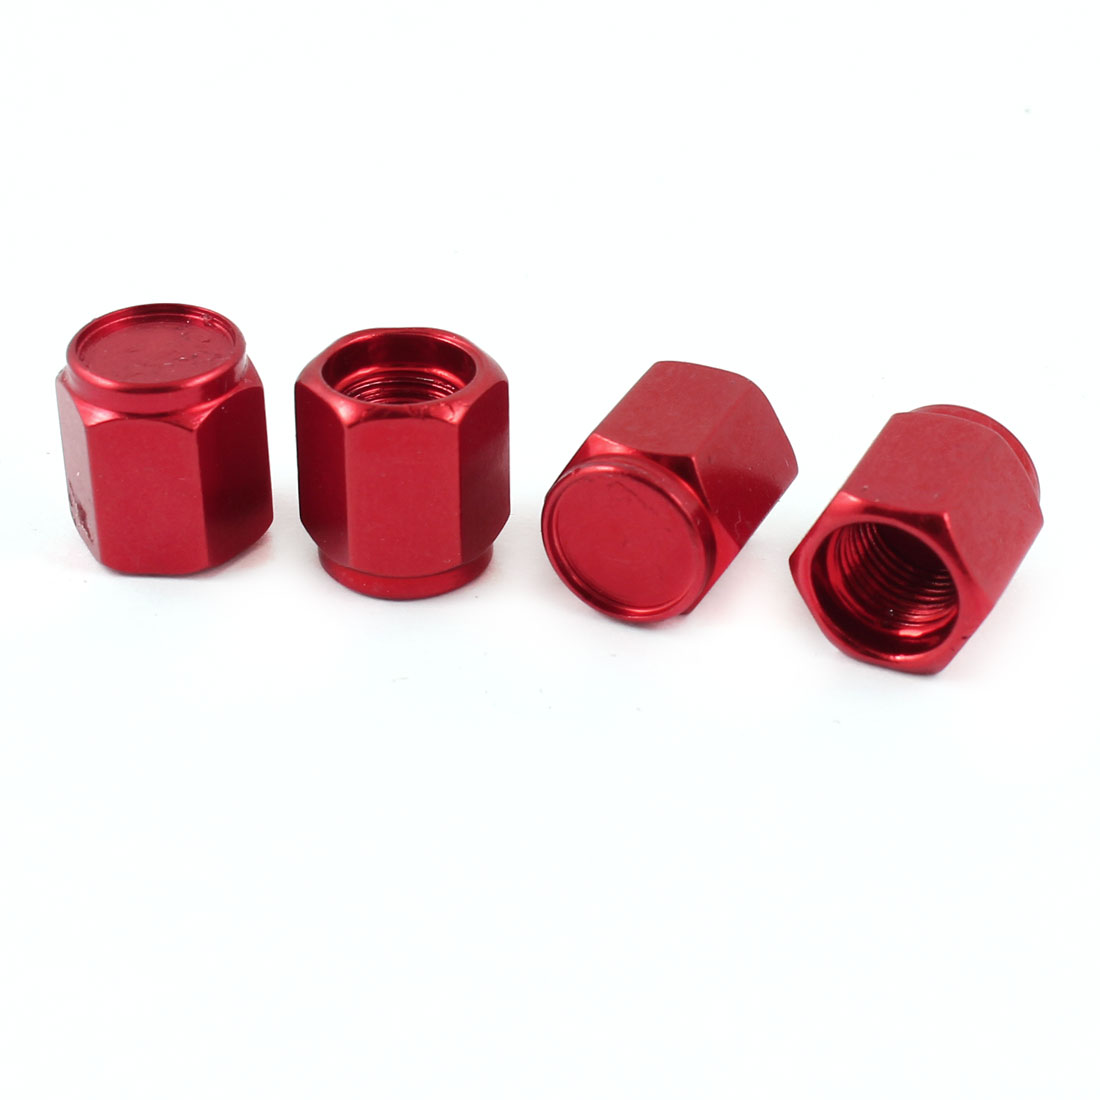 4 Pcs Red Alloy Hex Head Tire Valve Caps Protectors 7mm Inner Dia for Car